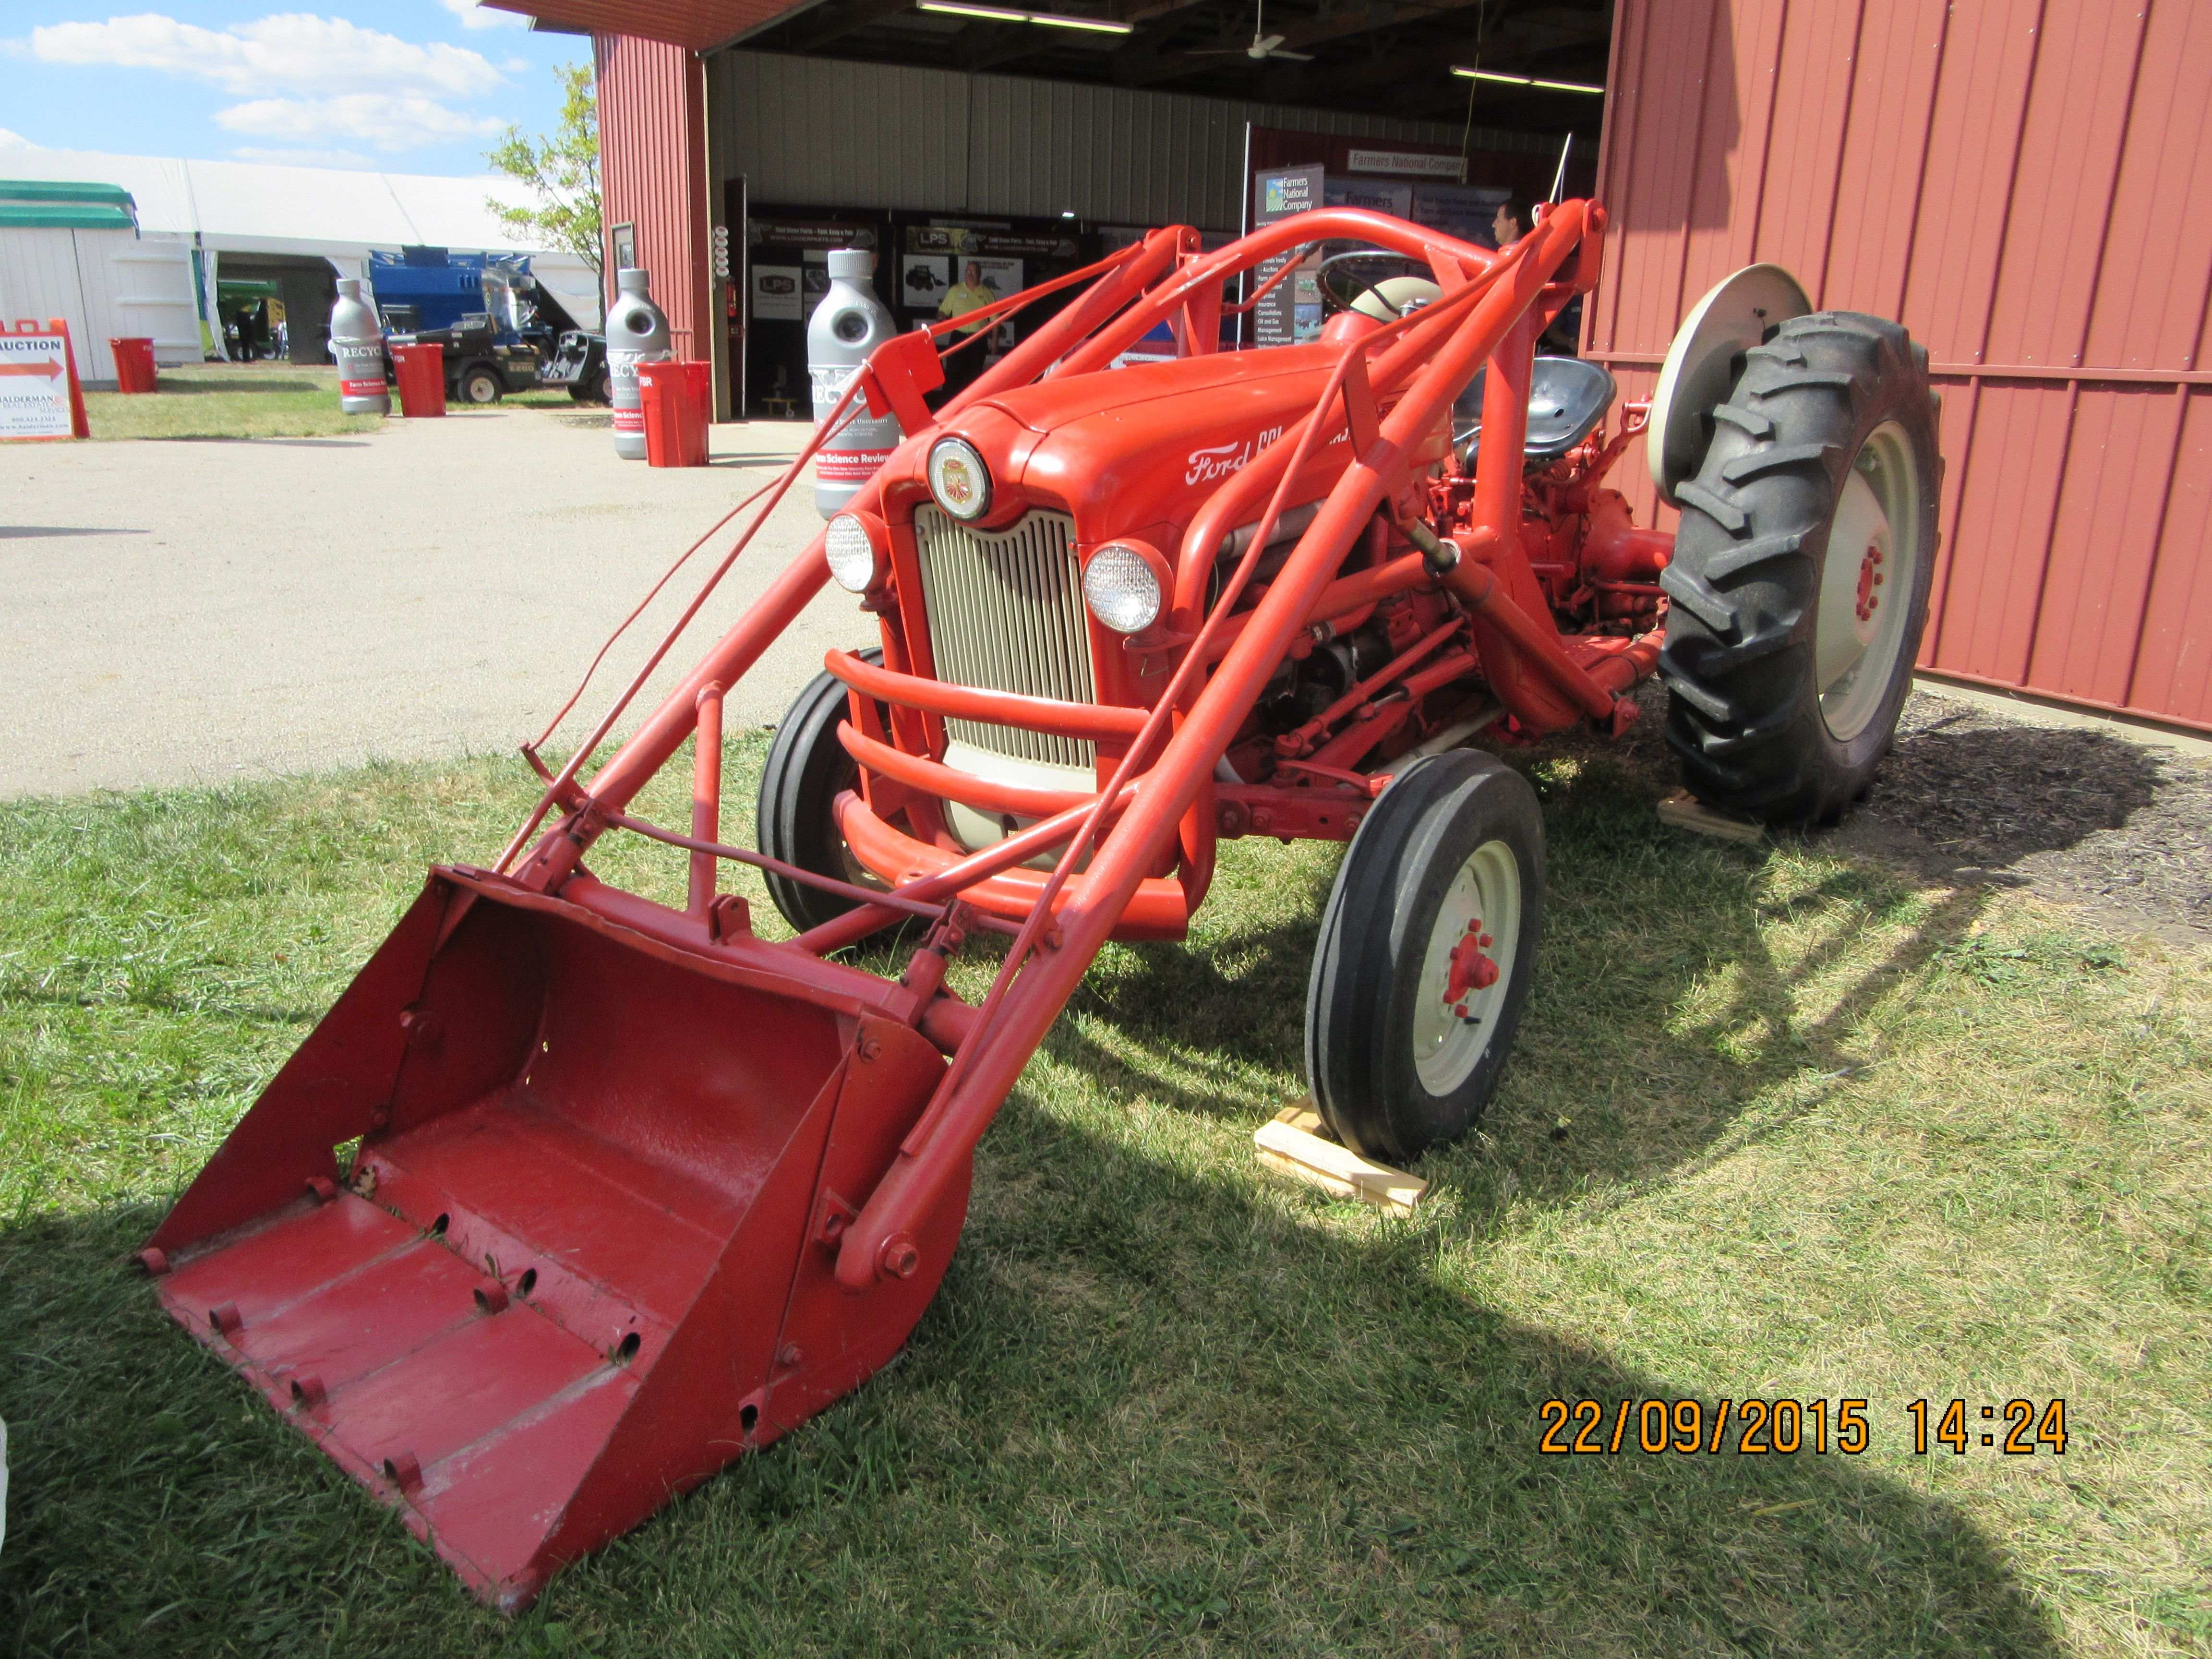 Red Ford 661 Workmaster Ford Tractors Antique Tractors Old Farm Equipment